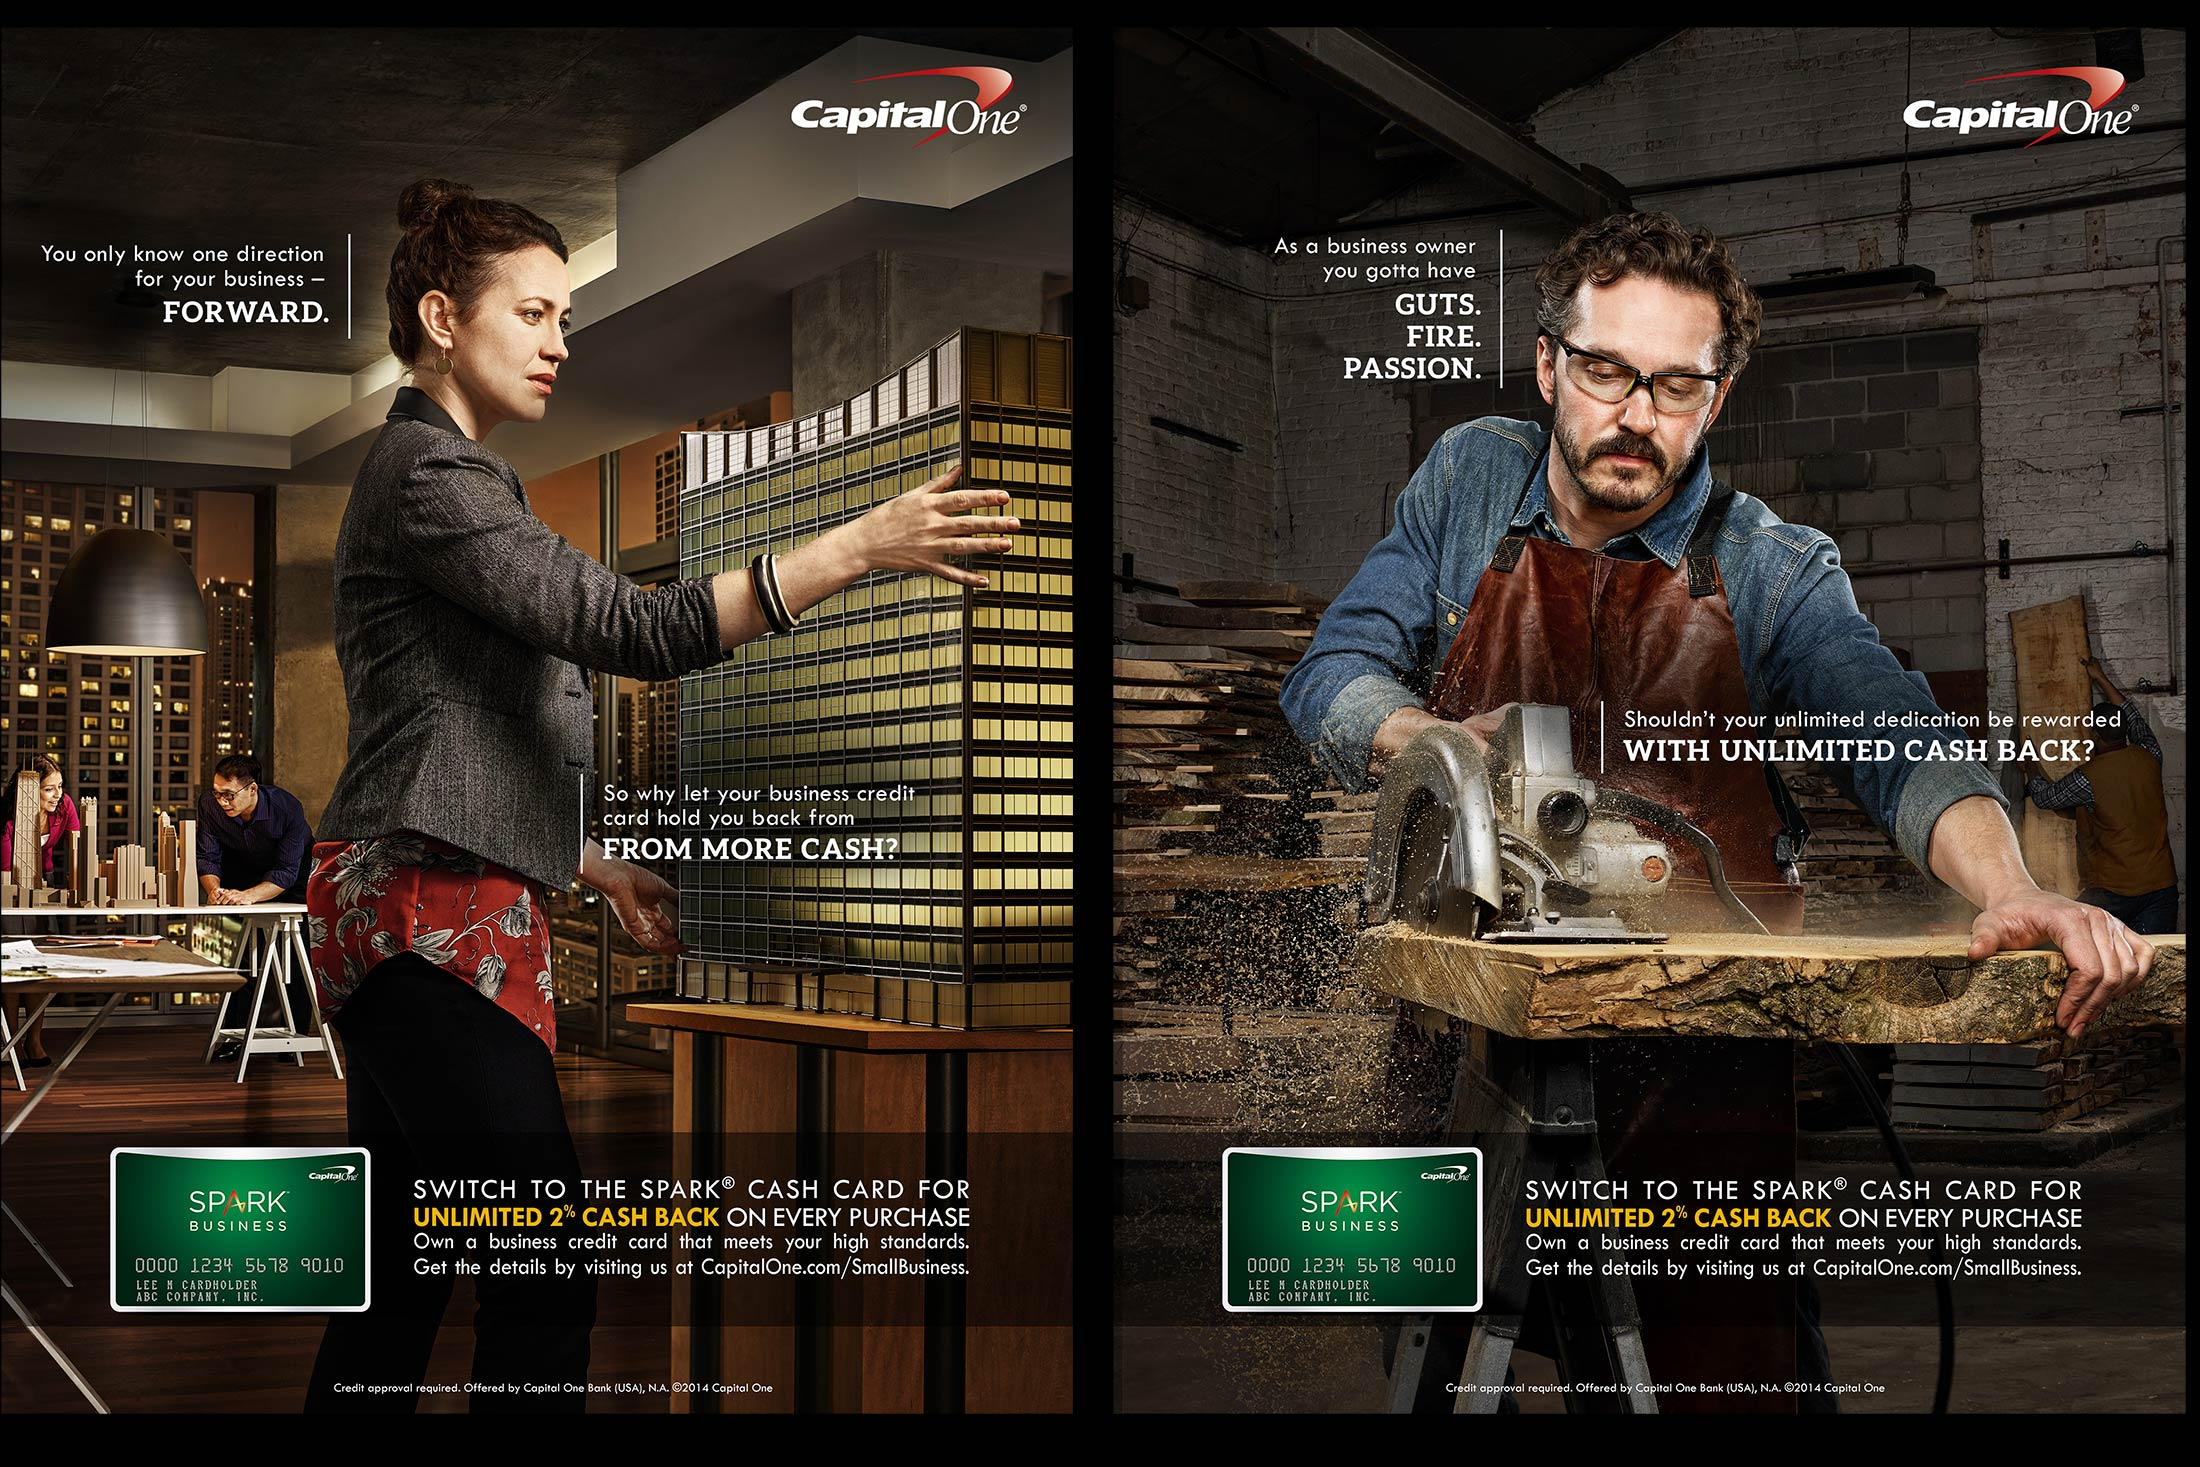 Capital One \'Spark\' Small Business Campaign – Ross Feighery Photography